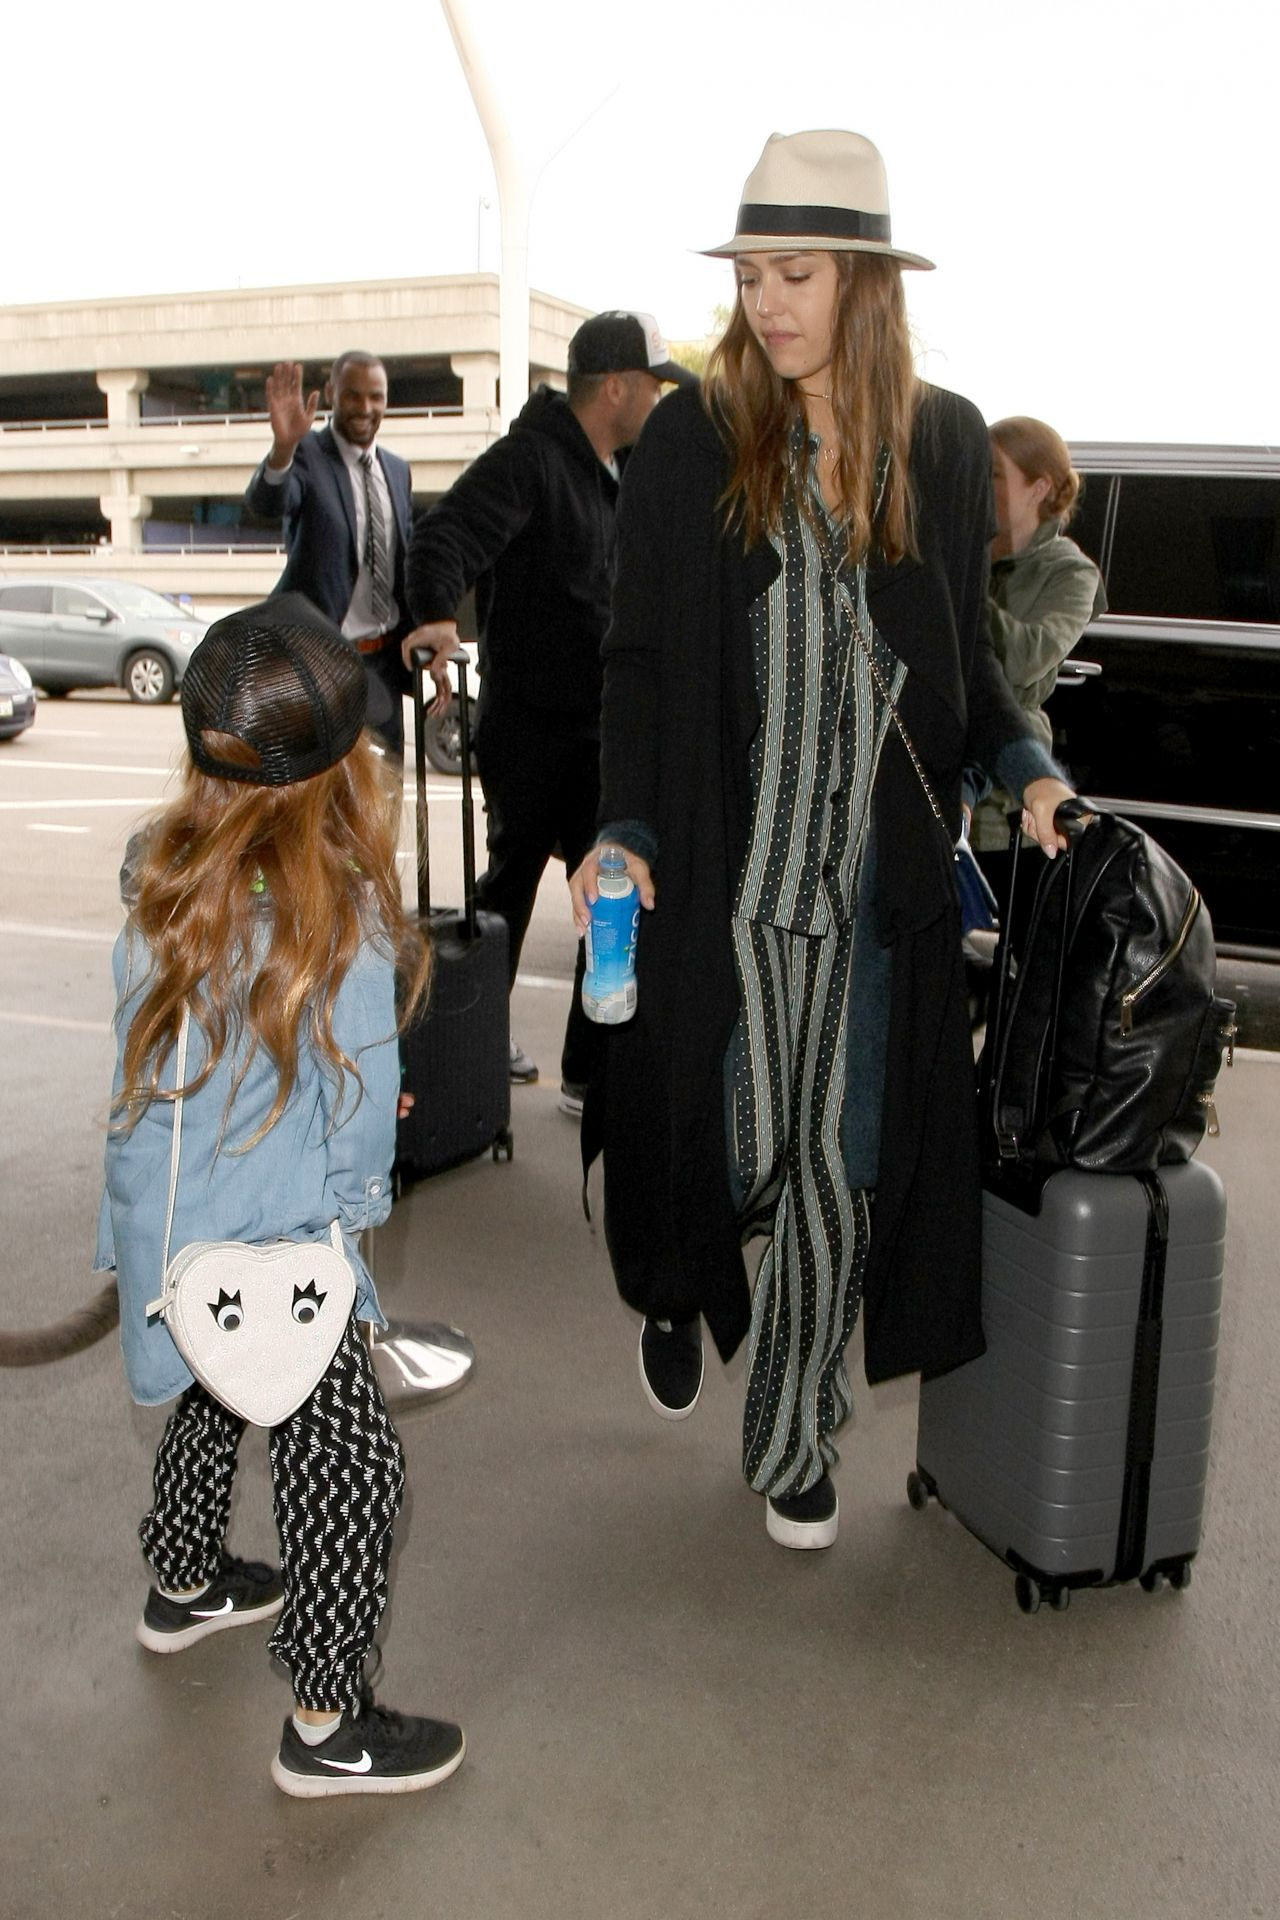 http://celebmafia.com/wp-content/uploads/2016/12/jessica-alba-arrives-at-lax-airport-in-los-angeles-12-26-2016-6.jpg